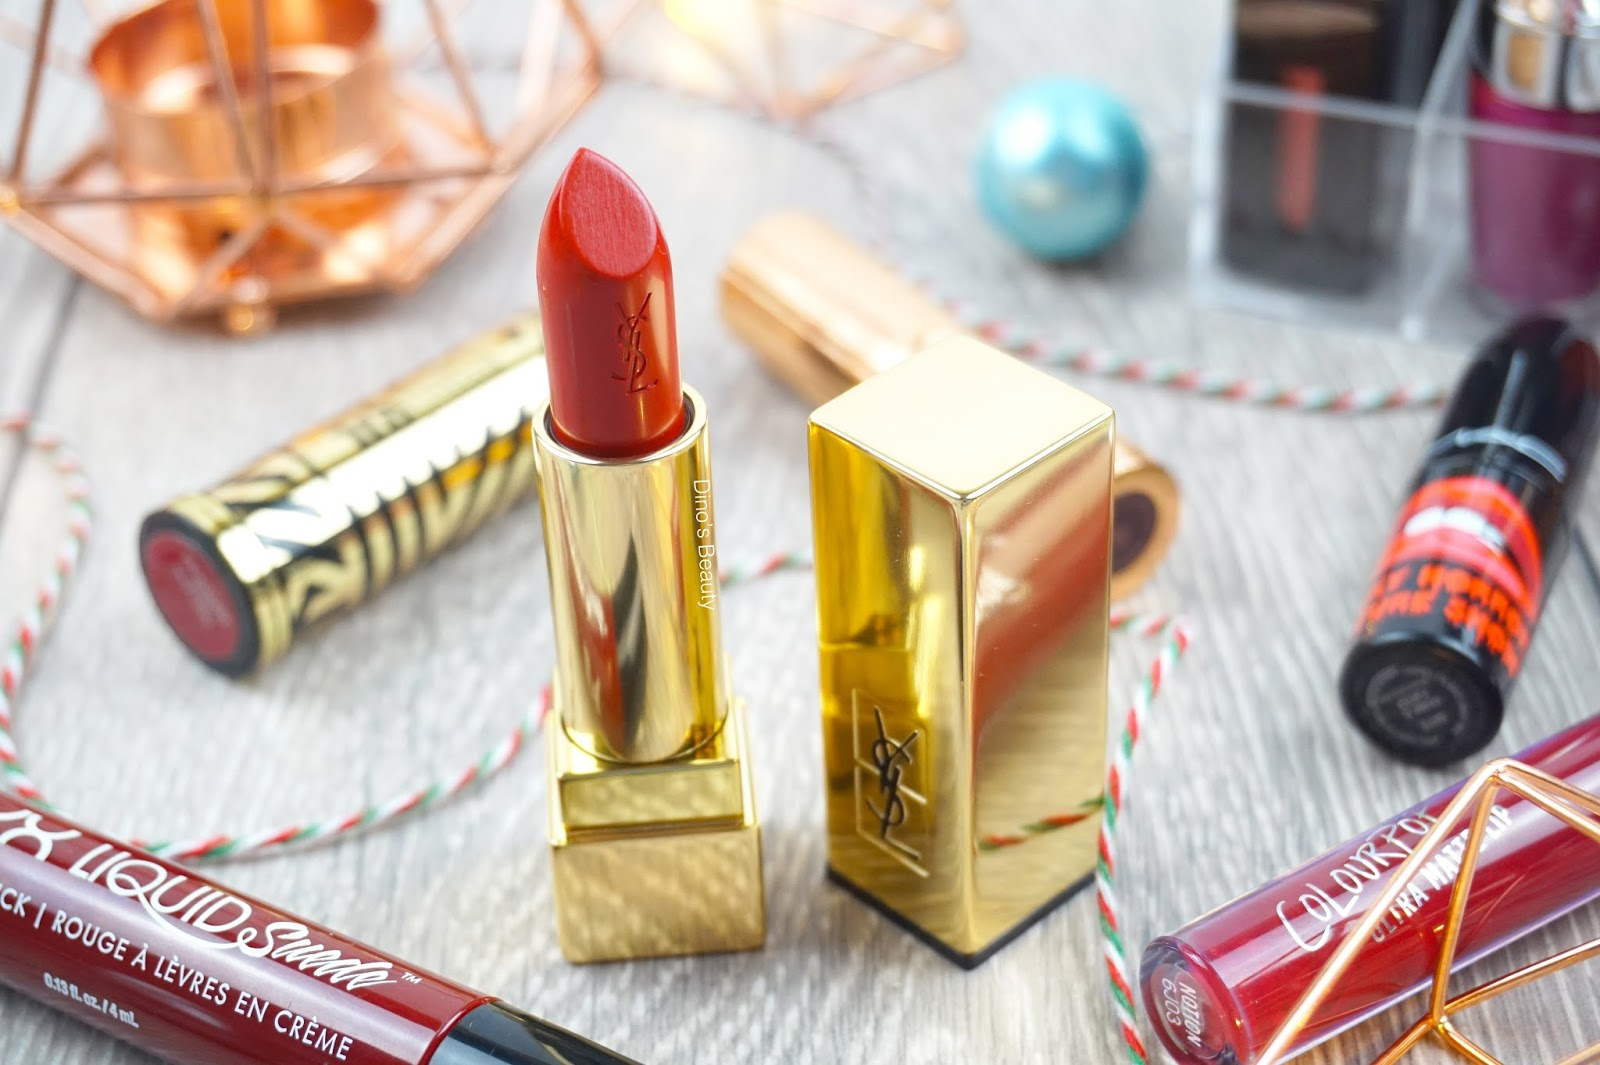 bbloggers, beauty, beauty bloggers, beauty review, YSL, Rouge Pur Couture, Le Rouge, pigmented, bold, red lips,